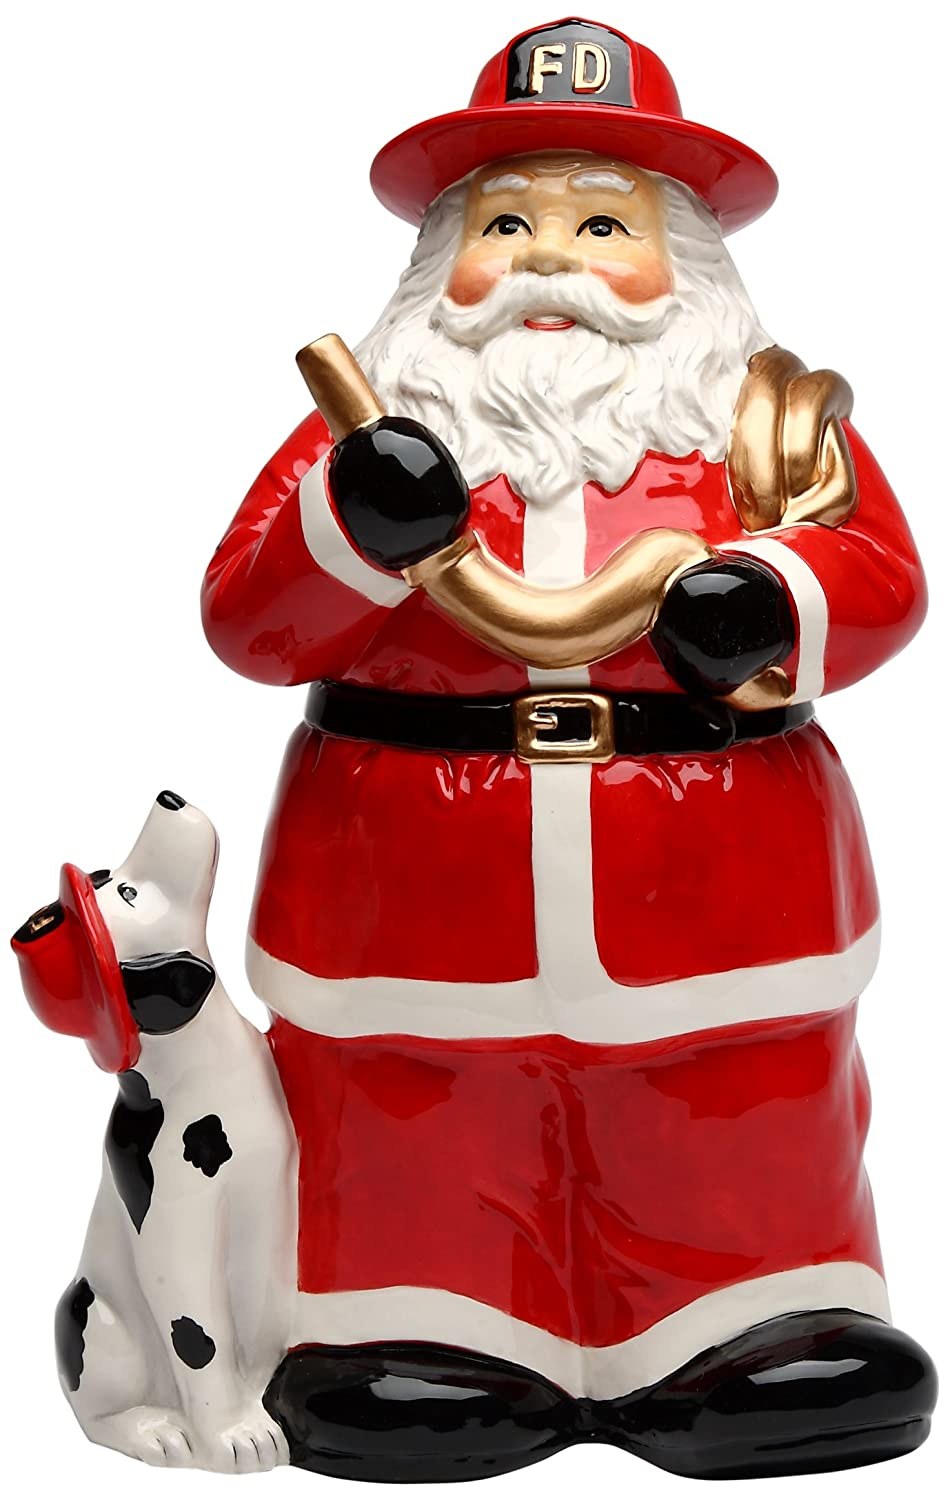 Santa Fireman Ceramic Cookie Jar